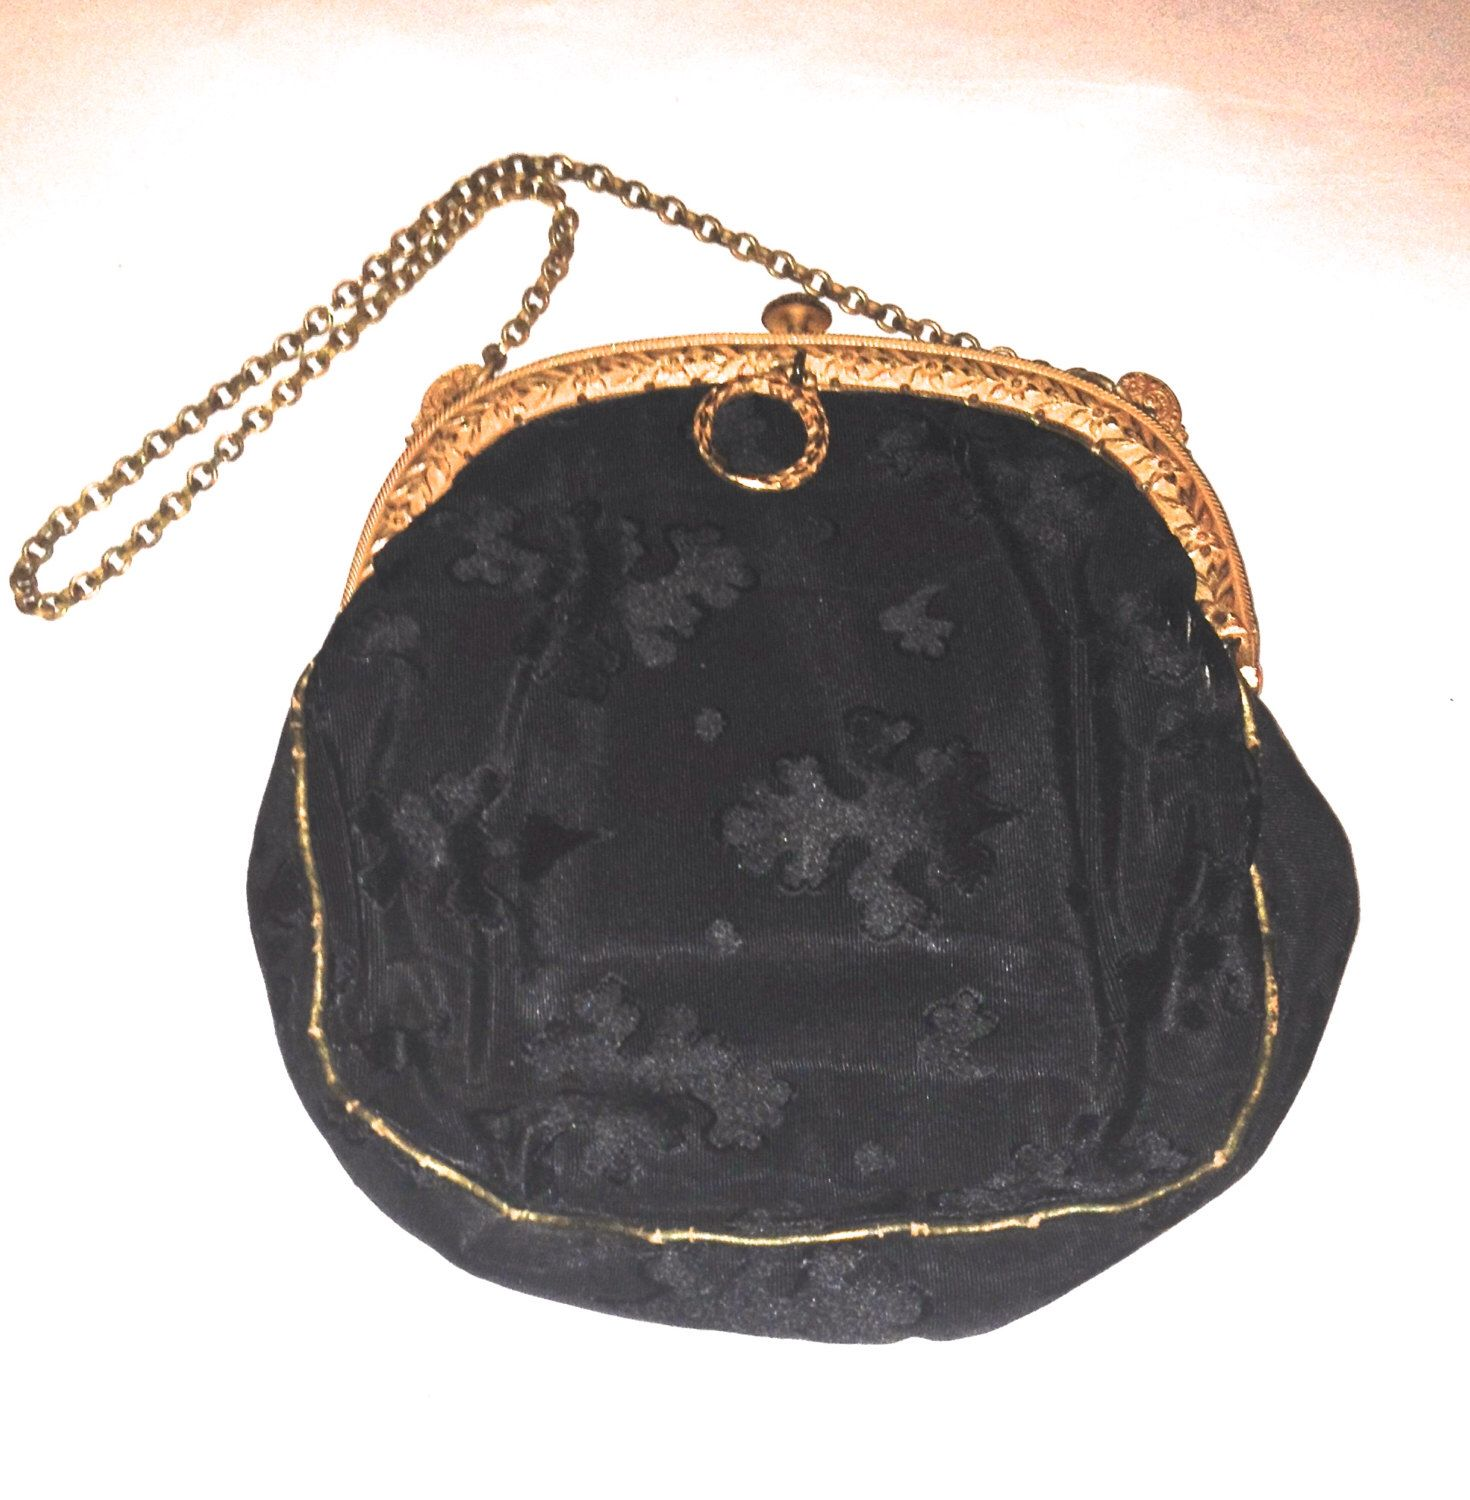 Antique Purse, Gold Brass Frame, Link Chain Purse, Damask Silk Purse, Brass Famed Silk Purse, Purses and Handbags, Ladies Accessories,